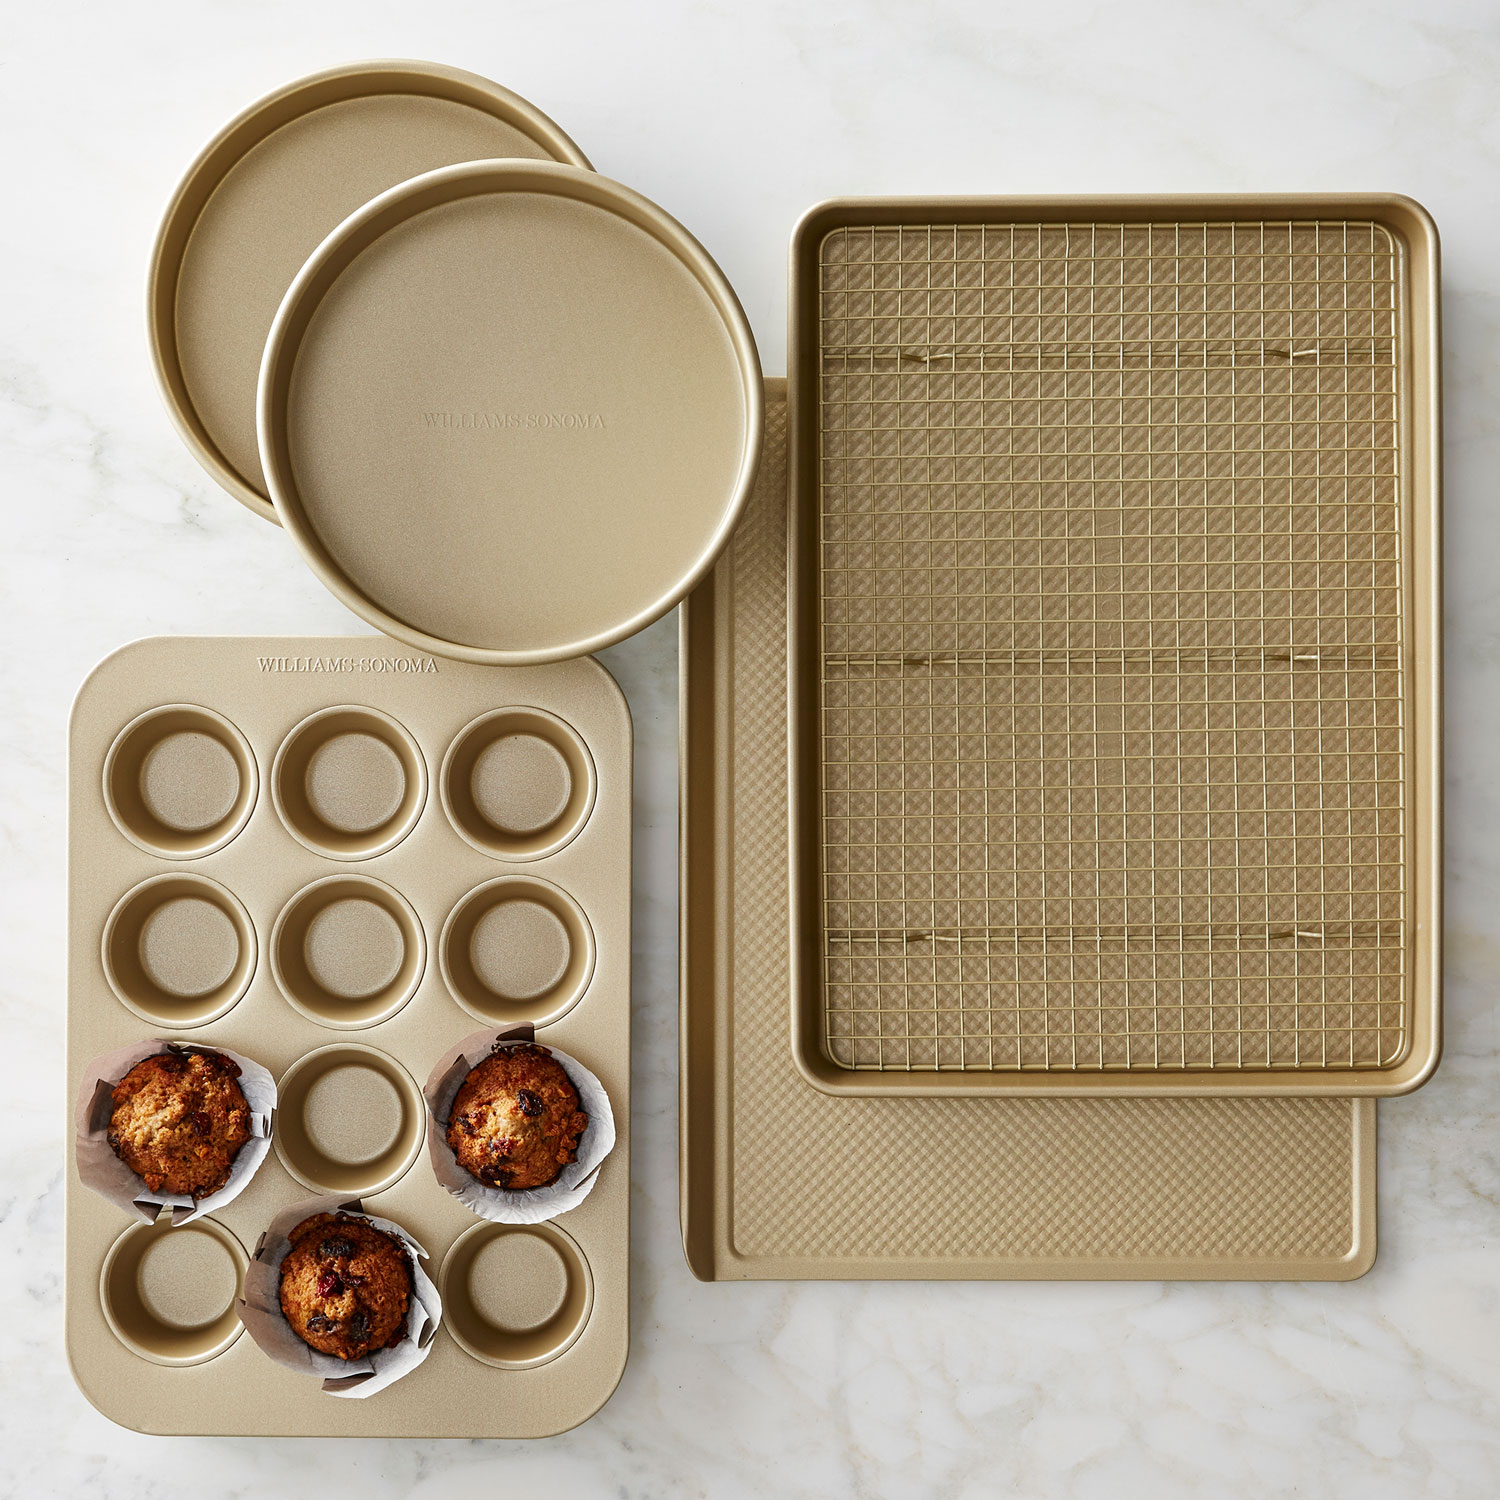 wedding registry product ideas goldtouch nonstick bakeware set gold williams sonoma